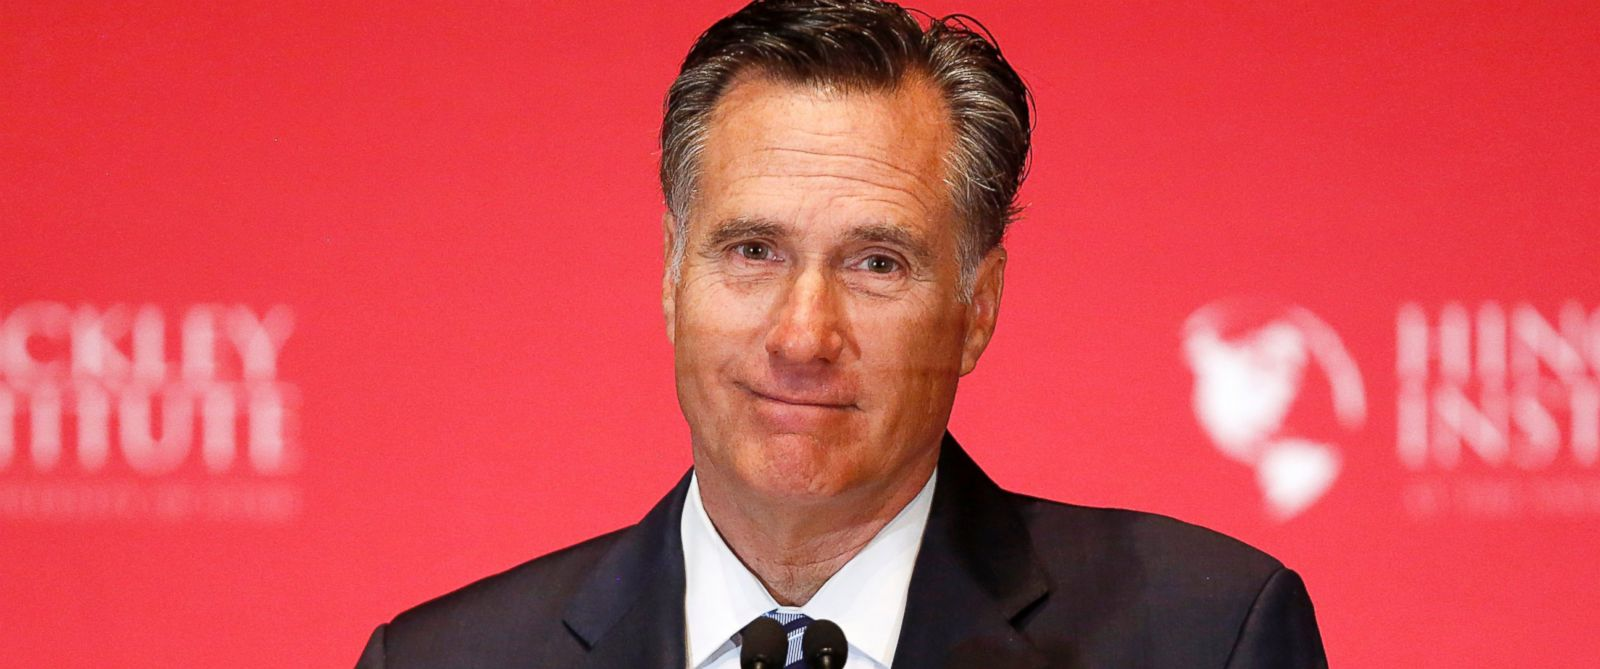 PHOTO: Mitt Romney pauses as he delivers a speech criticizing current Republican presidential candidate Donald Trump at the Hinckley Institute of Politics at the University of Utah in Salt Lake City, March 3, 2016.